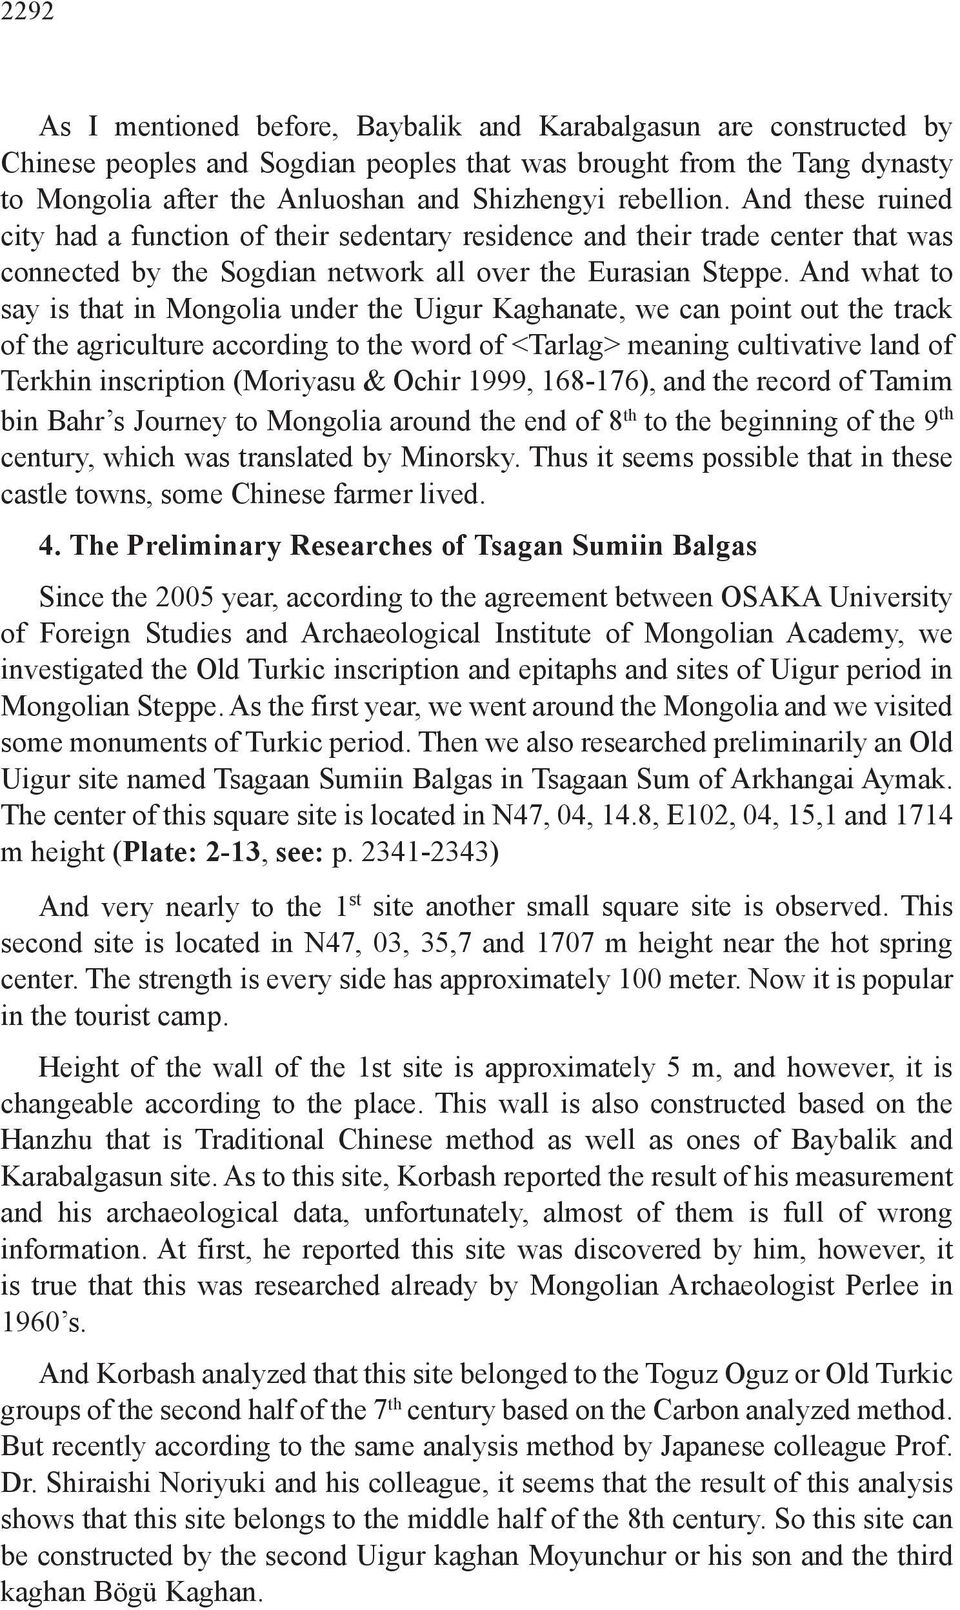 And what to say is that in Mongolia under the Uigur Kaghanate, we can point out the track of the agriculture according to the word of <Tarlag> meaning cultivative land of Terkhin inscription